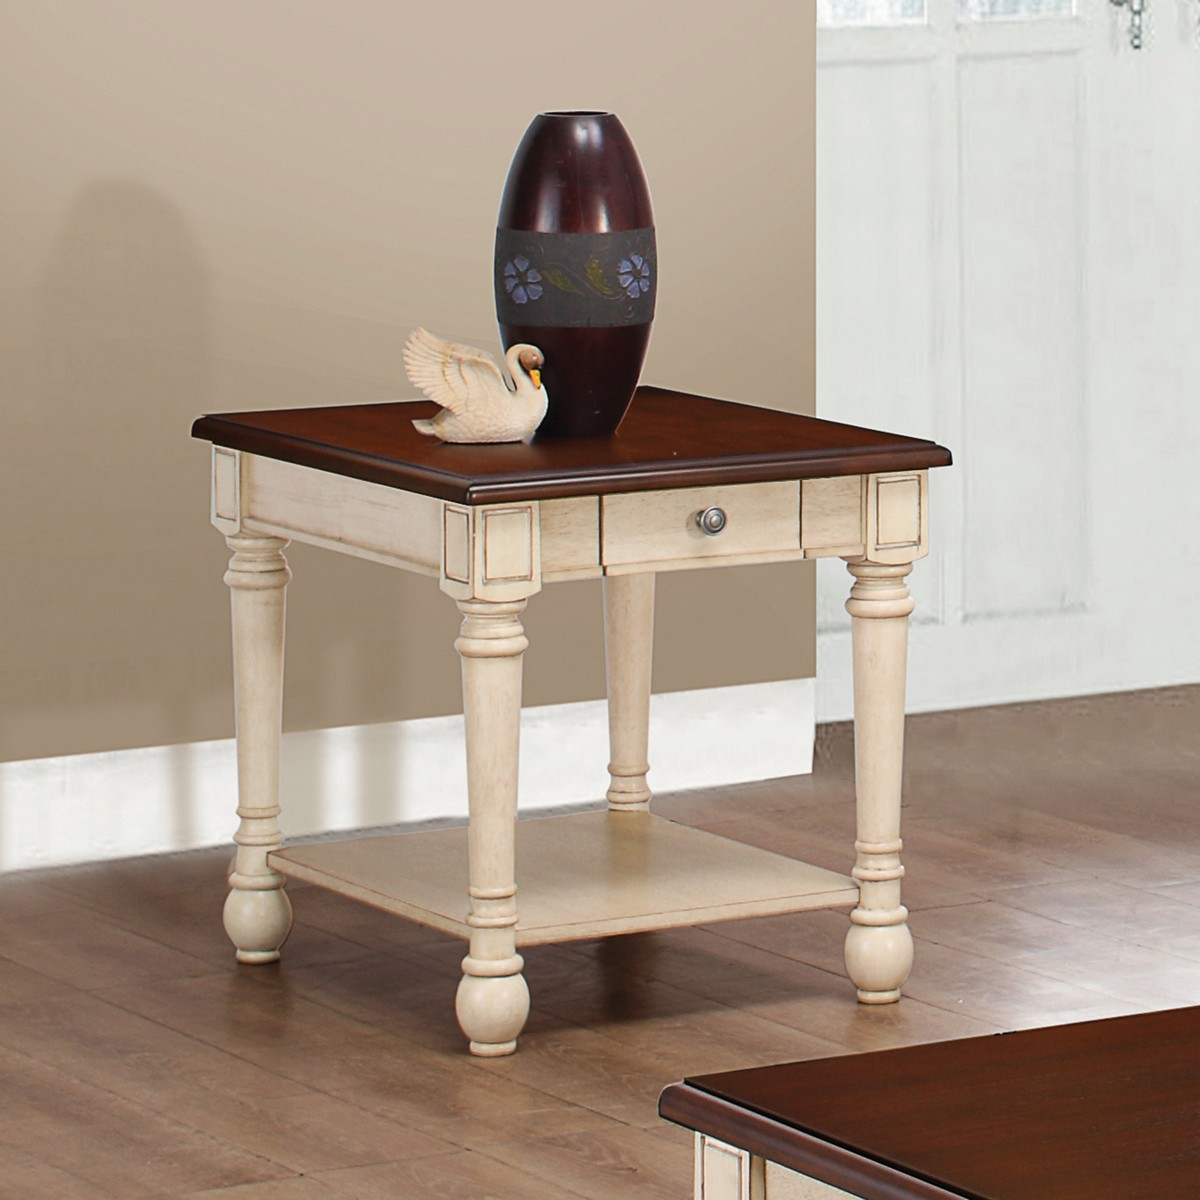 Coaster 704417 End Table - Dark Brown/ Antique White